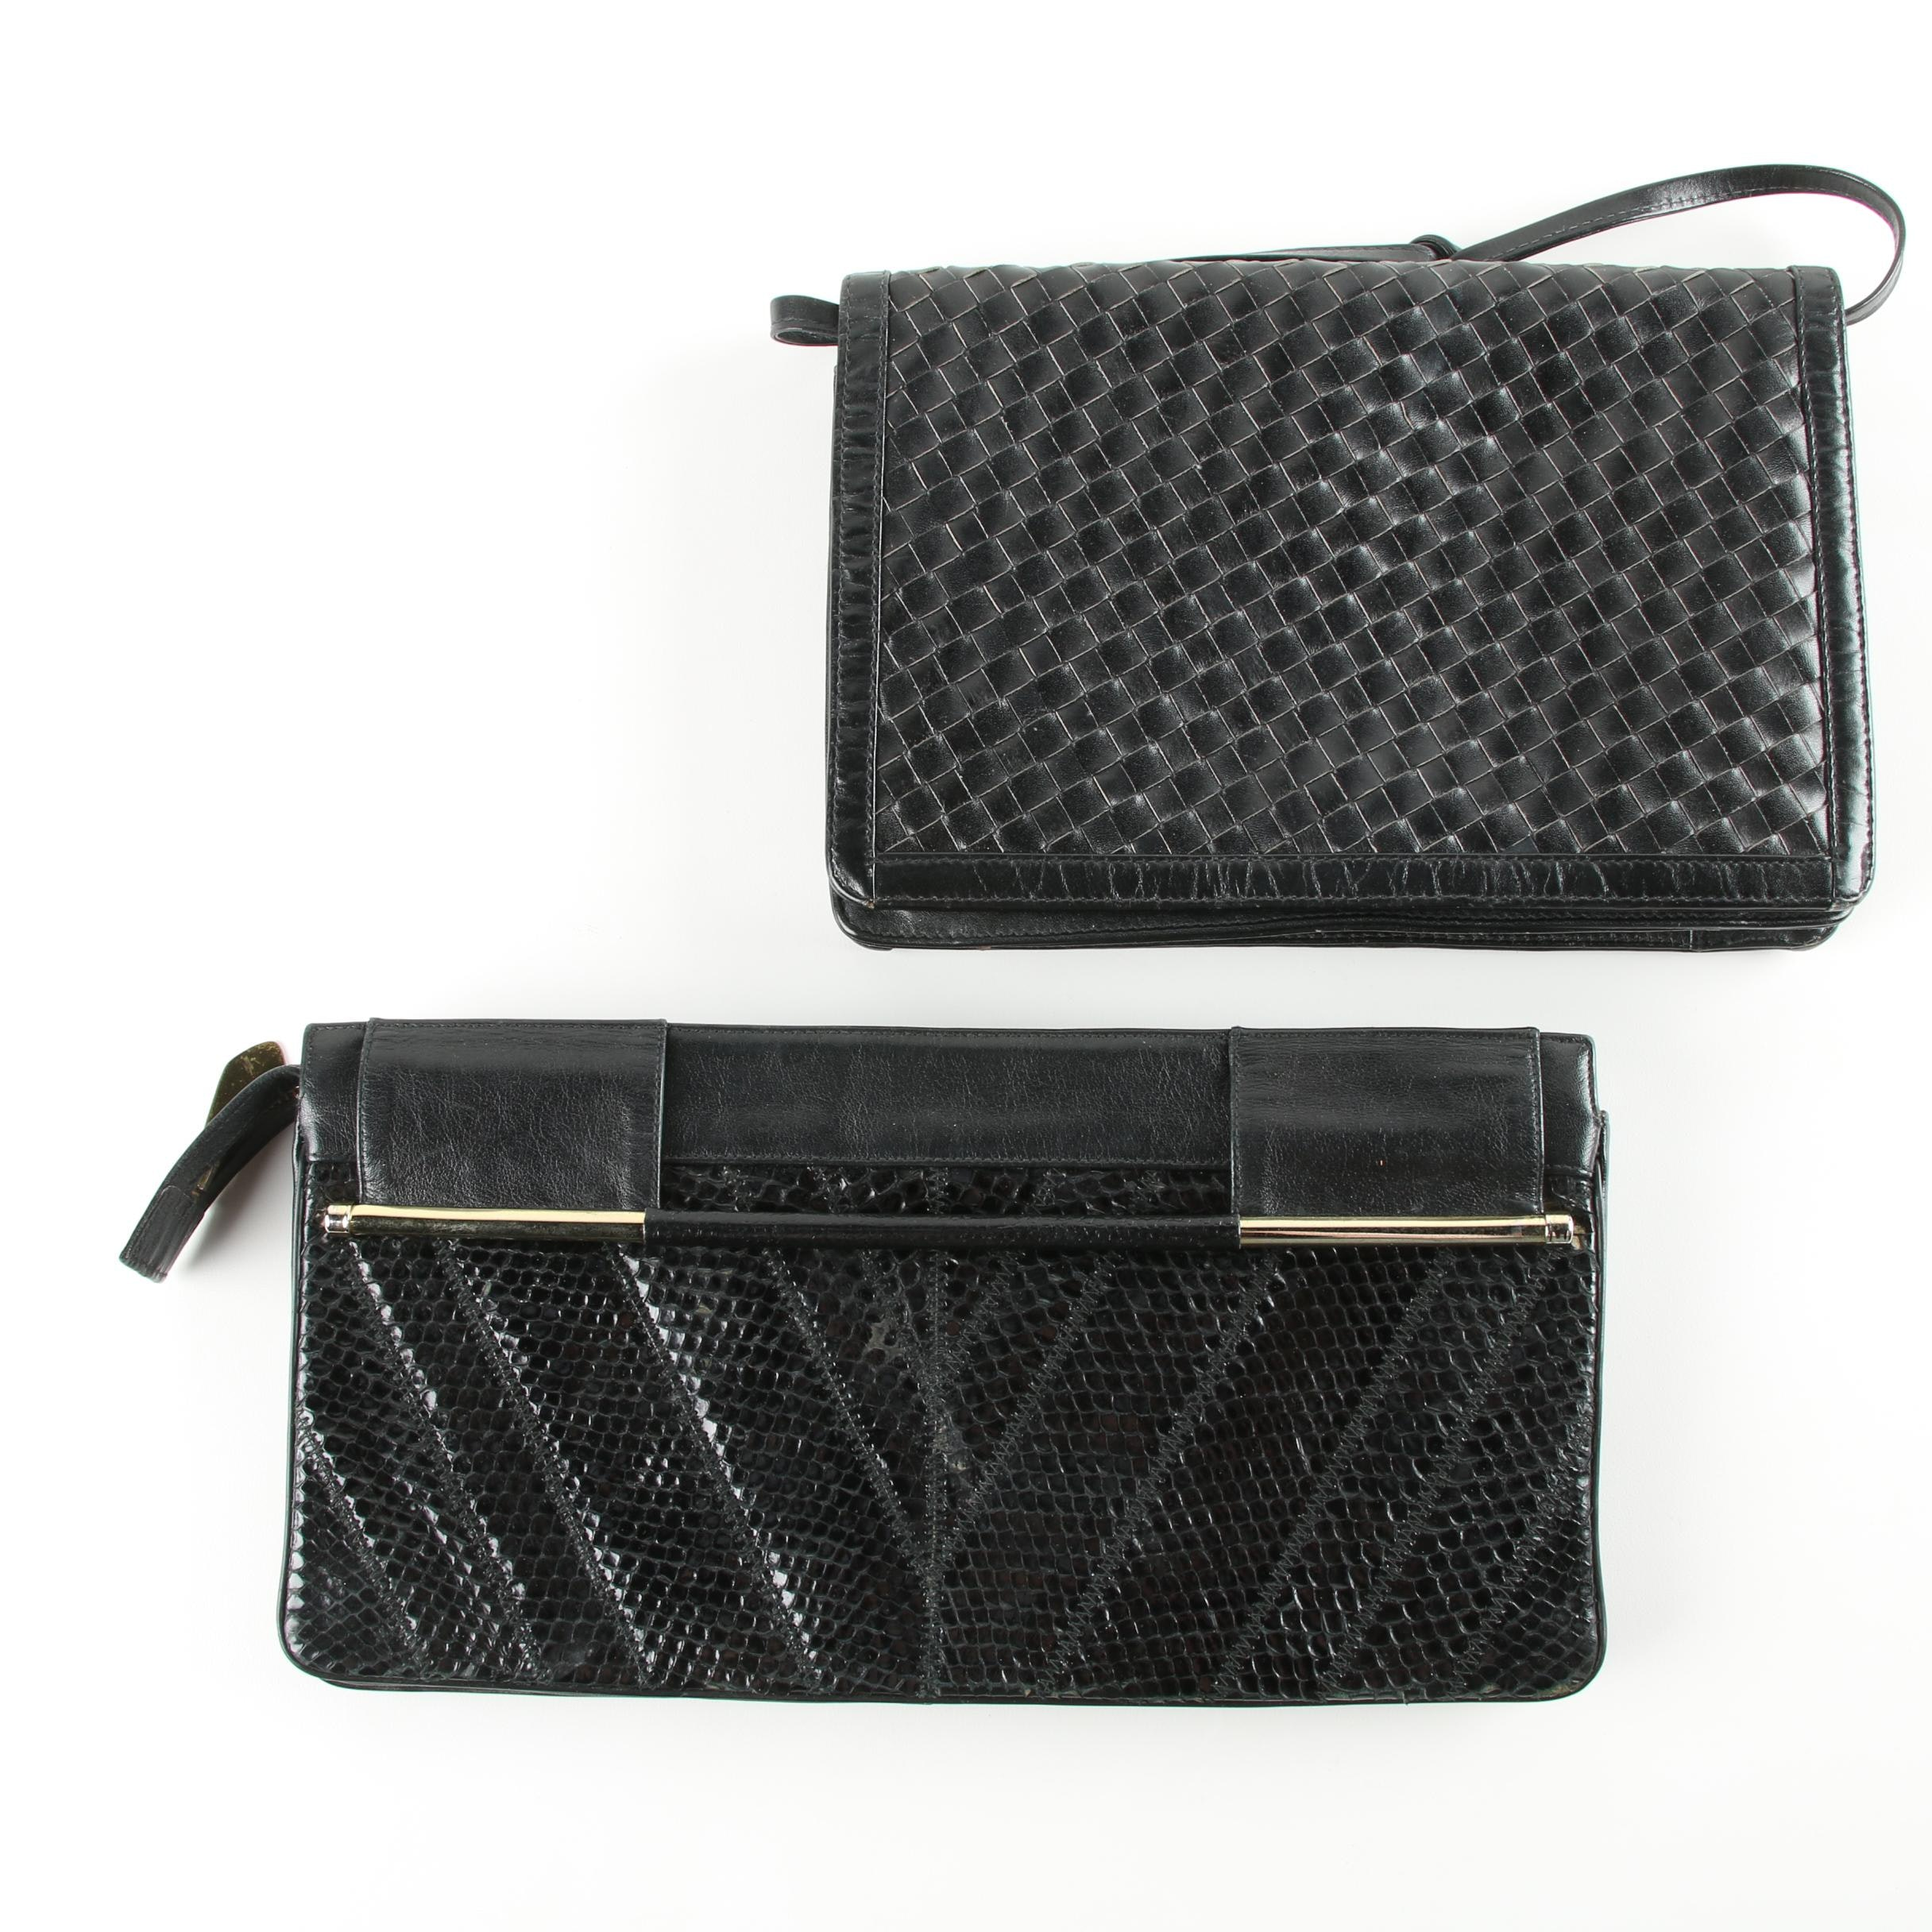 Vintage Snakeskin and Woven Leather Handbags